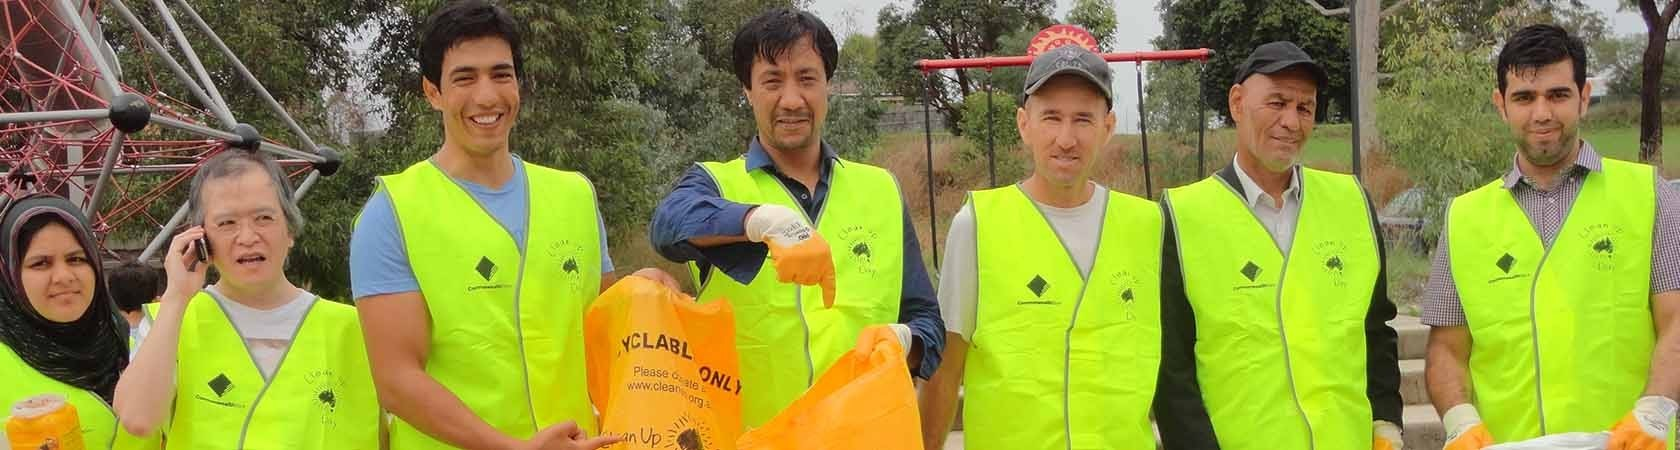 Australia Clean Up Day